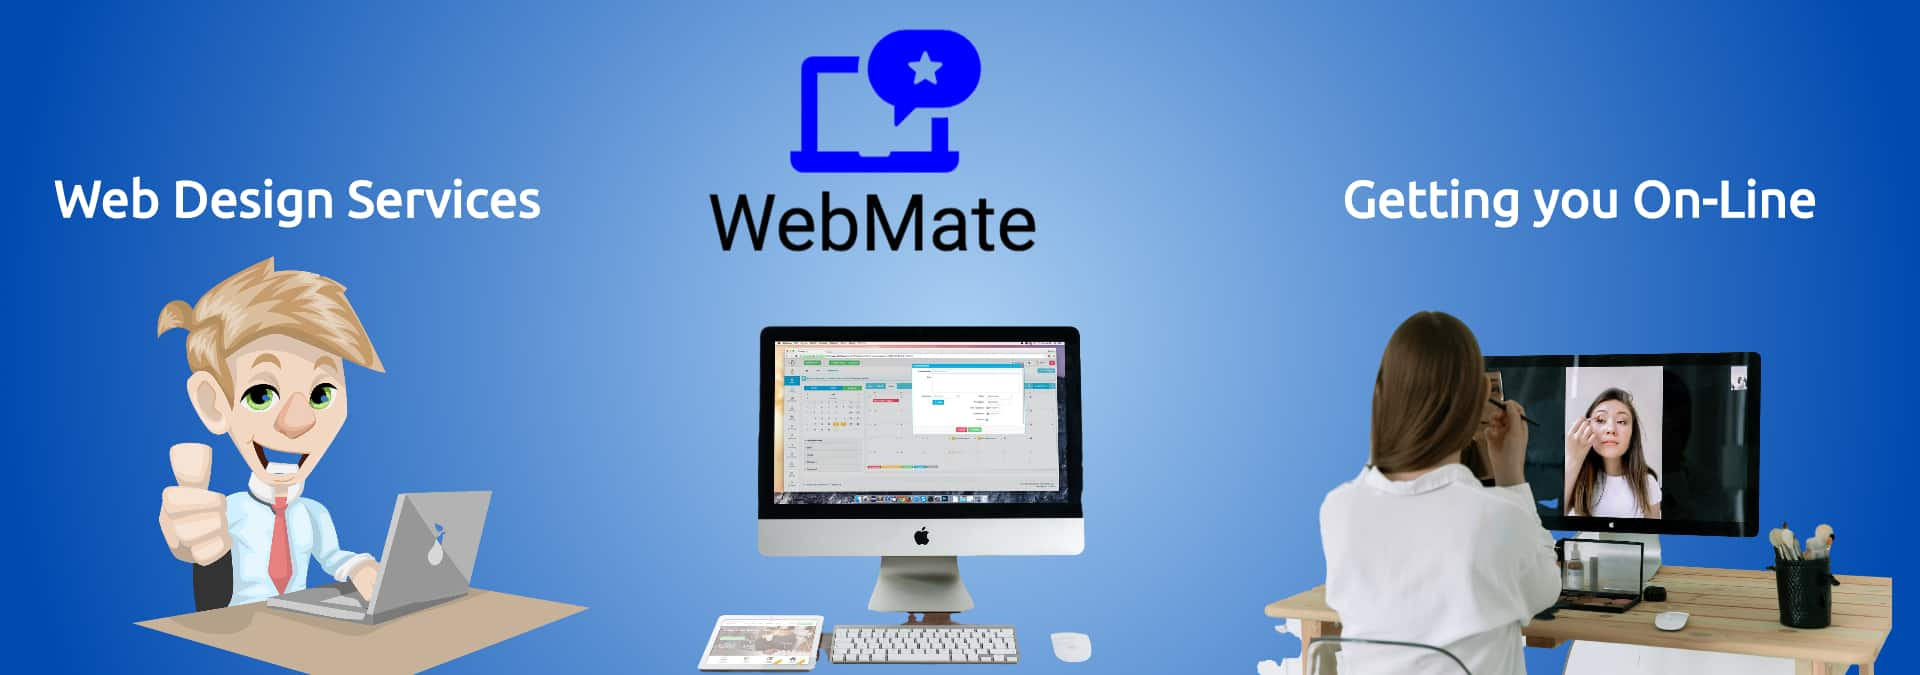 WebMateBanner 1 | Home-Baile | Web Development and Support Services